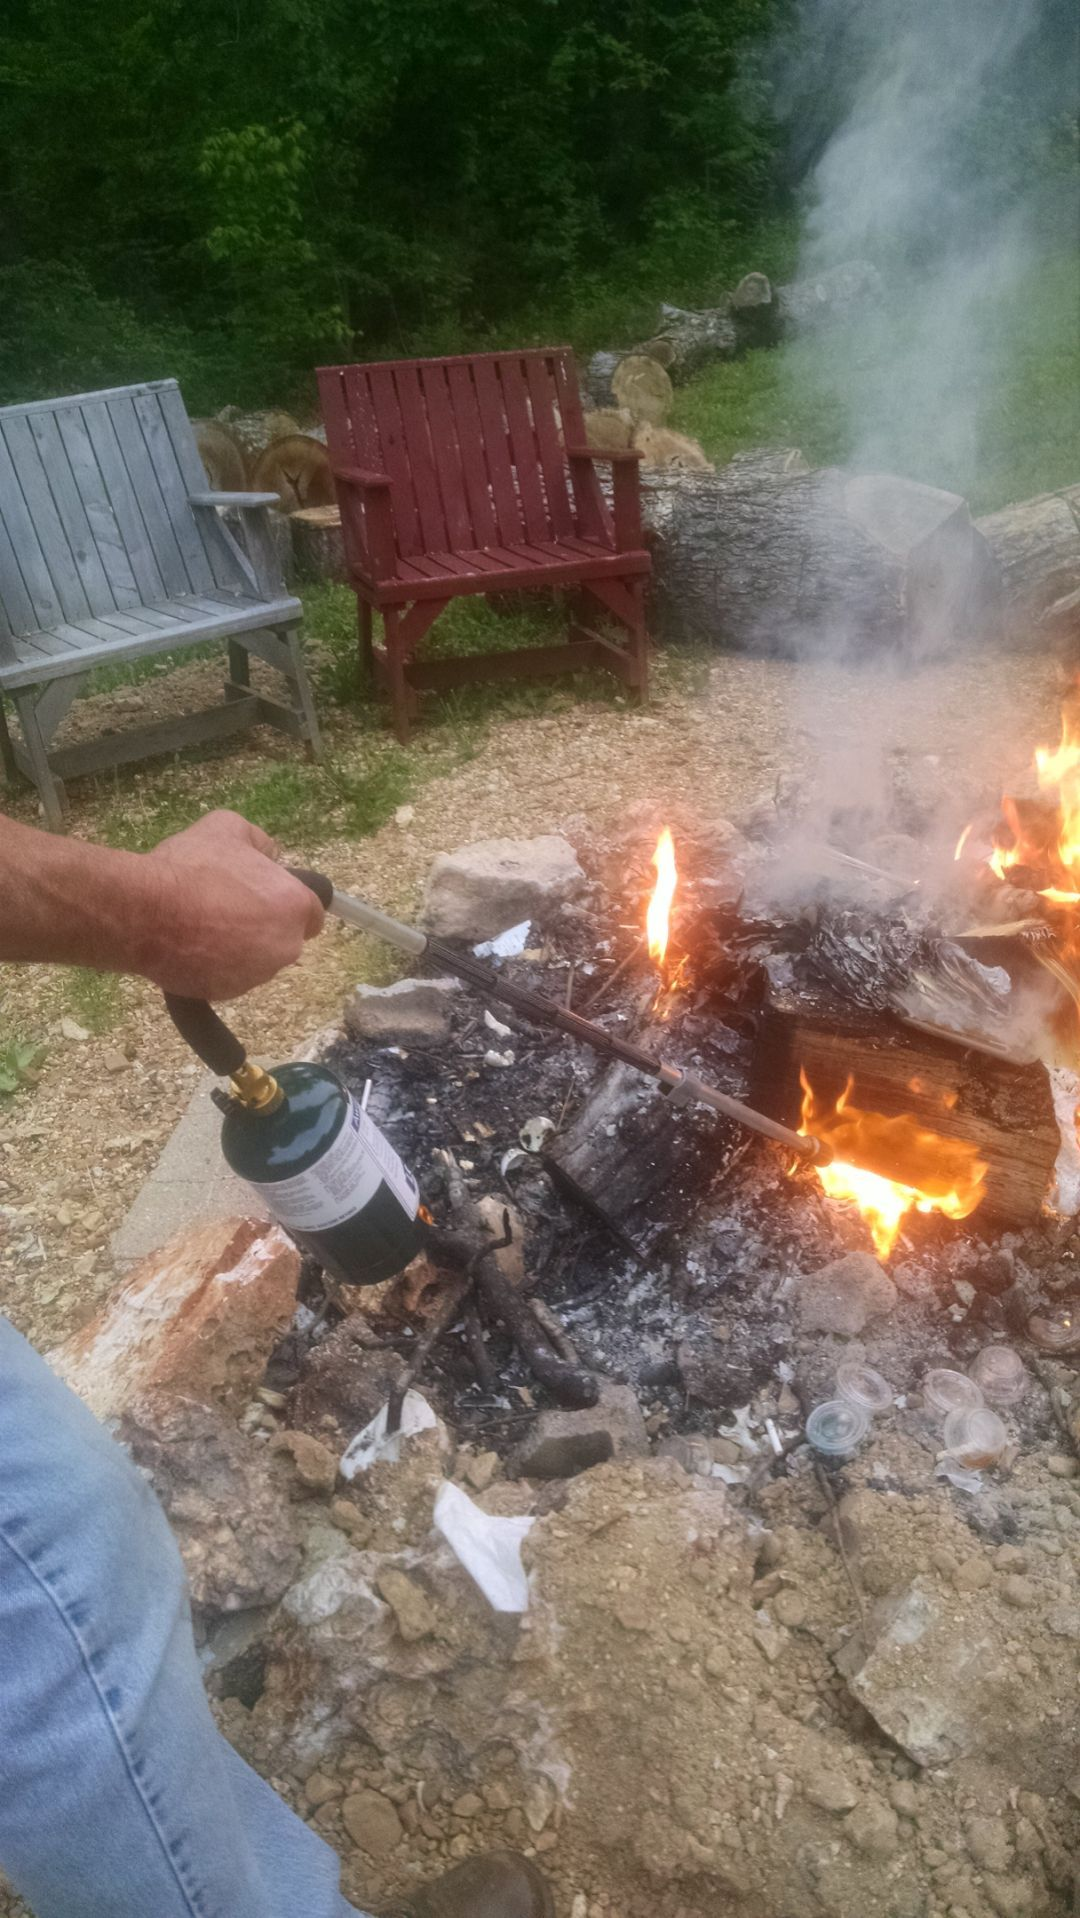 Product Test: BenzOmatic Lawn And Garden Torch